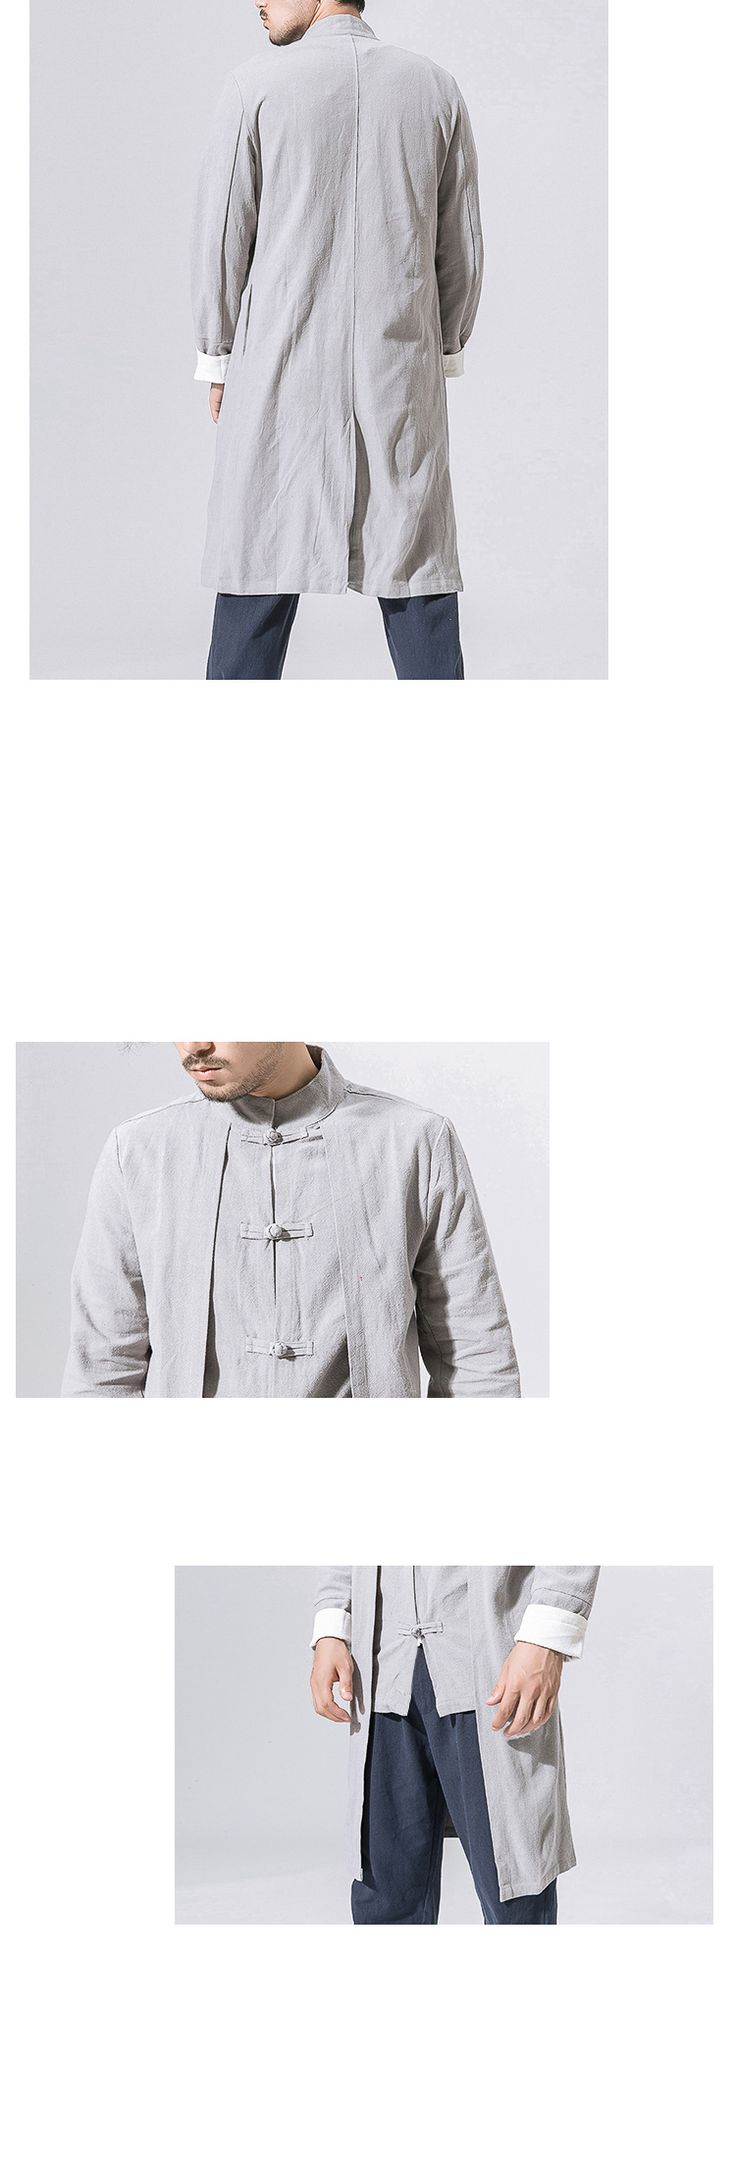 Sinicism Store 5XL Men Long Length Jacket Men Trench 2017 Cotton Linen Fabric Male Vintage Jacket Coat Windbreaker Size Plus-in Trench from Men's Clothing & Accessories on Aliexpress.com | Alibaba Group